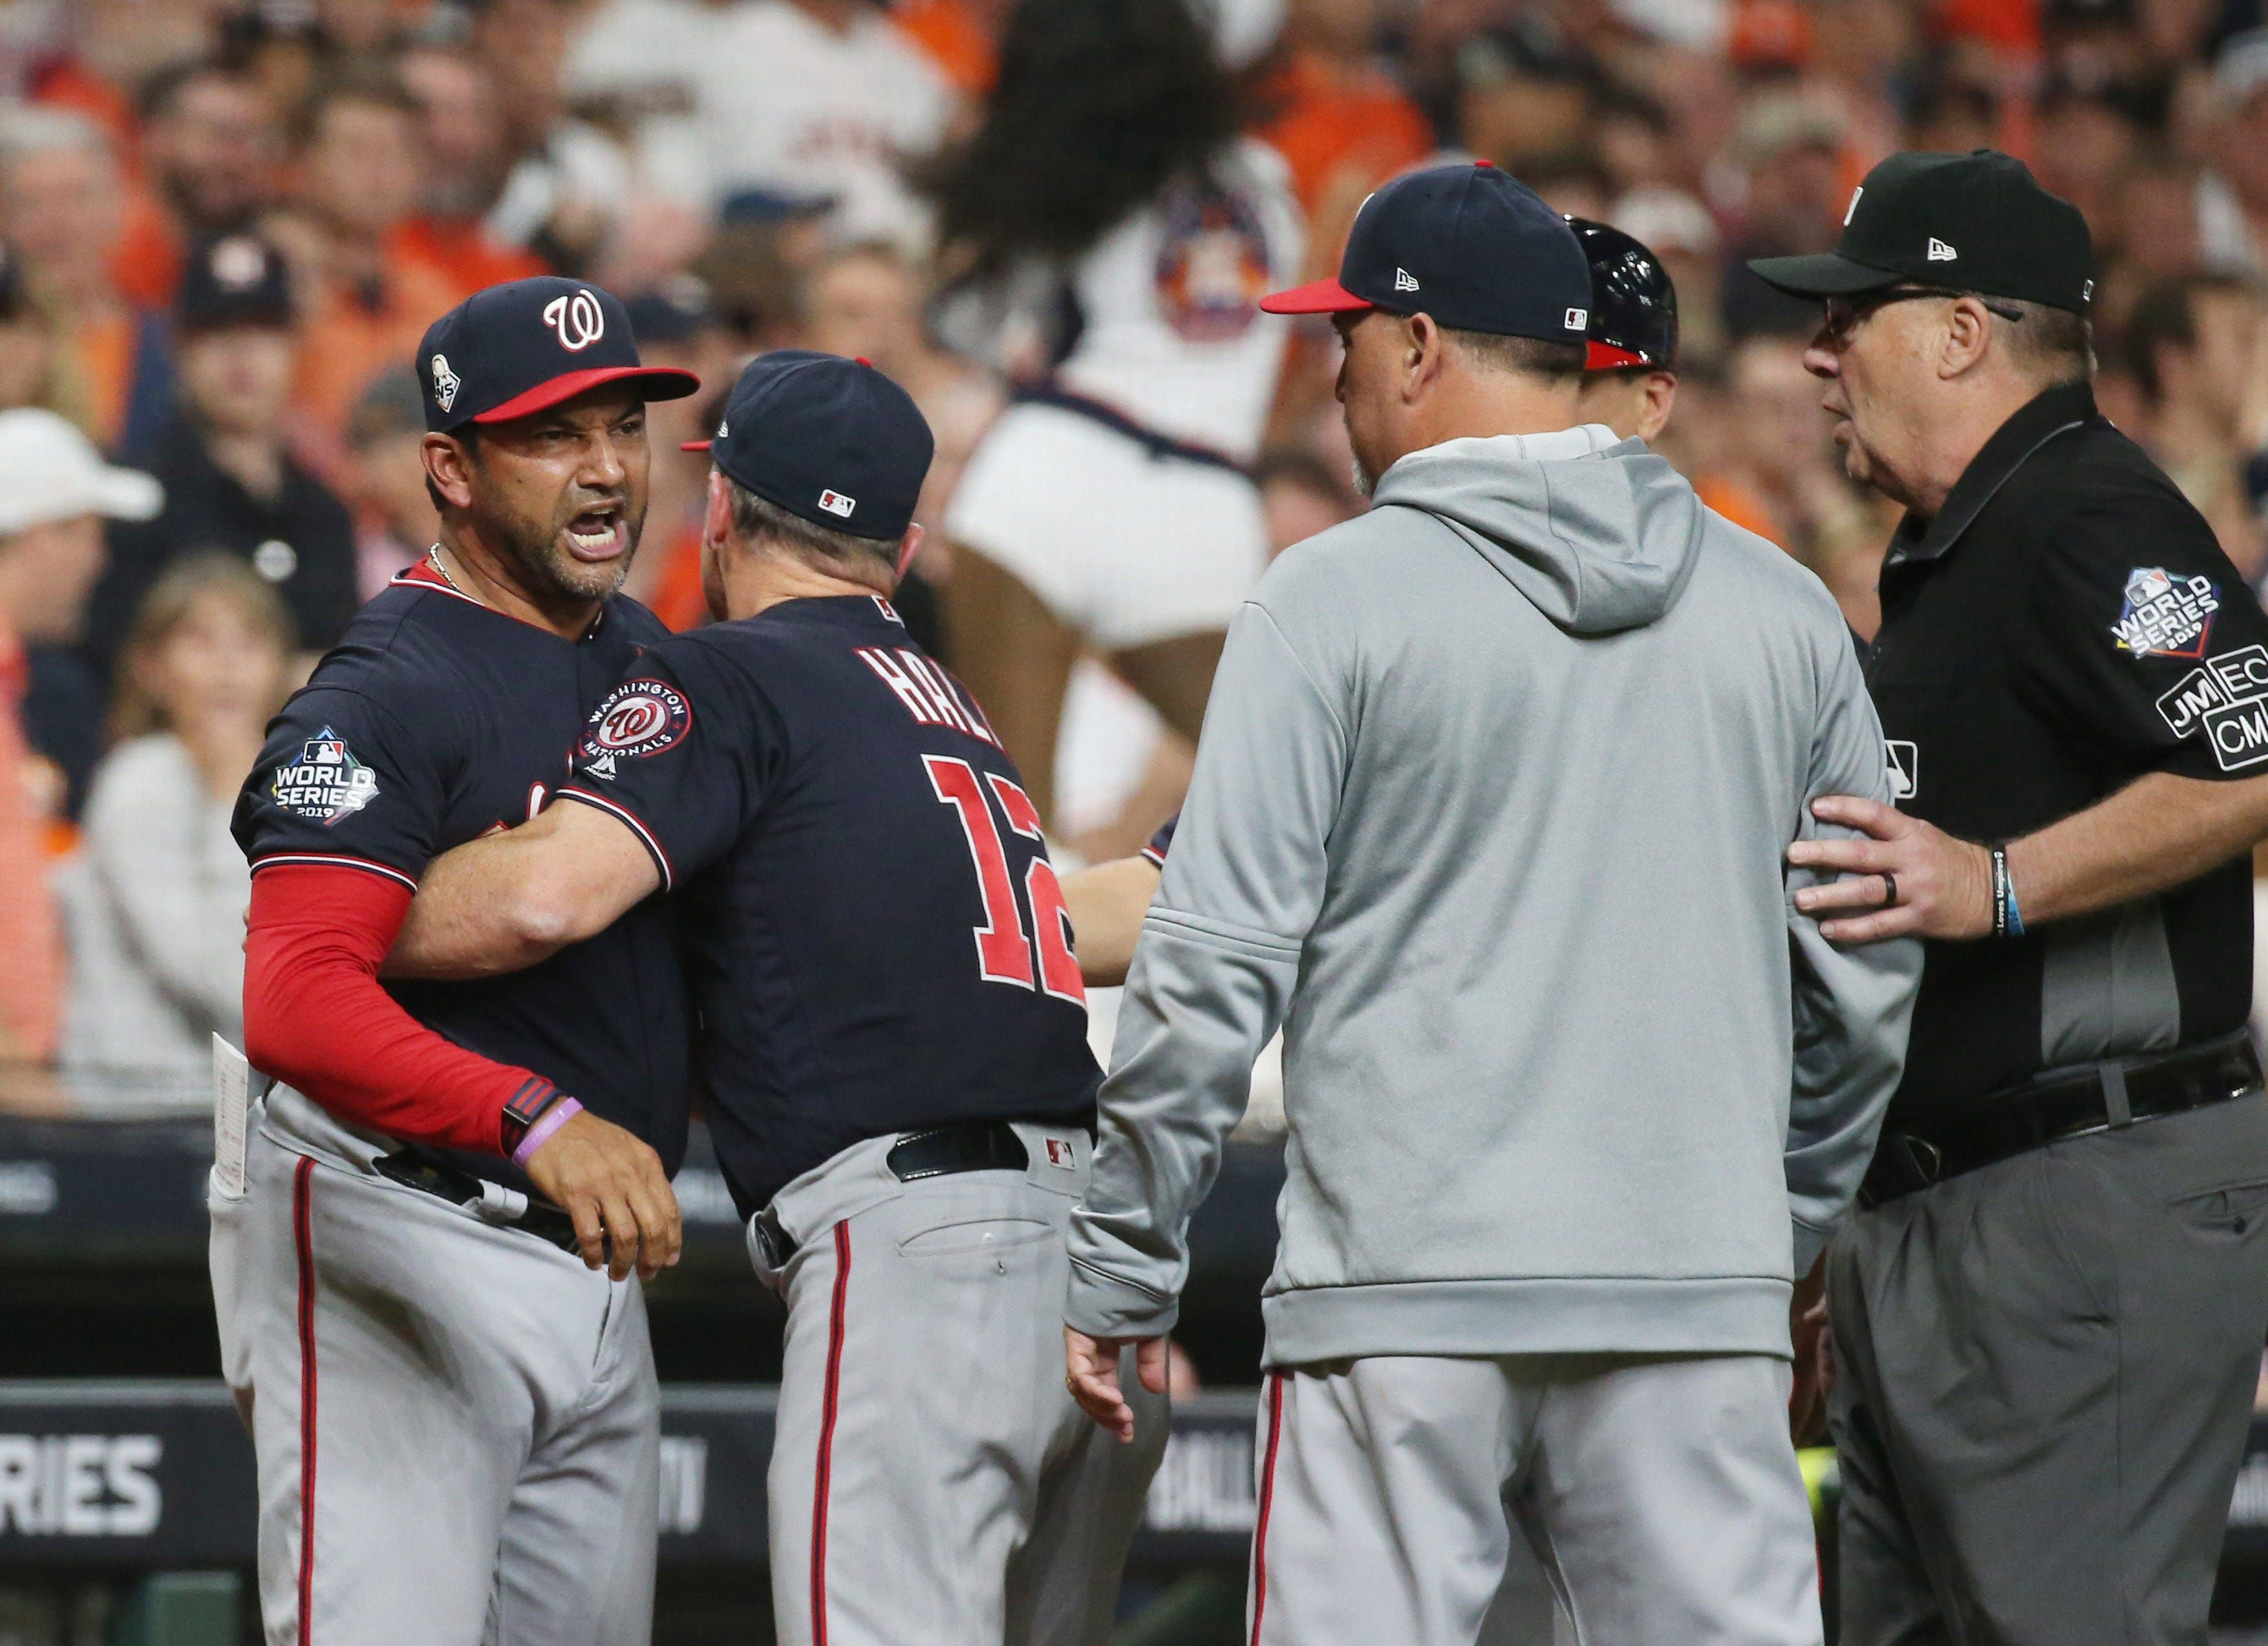 Major League Baseball Playoffs Schedule 2019 Scores Results Through To World Series Playoff Schedule Baseball Playoffs Baseball